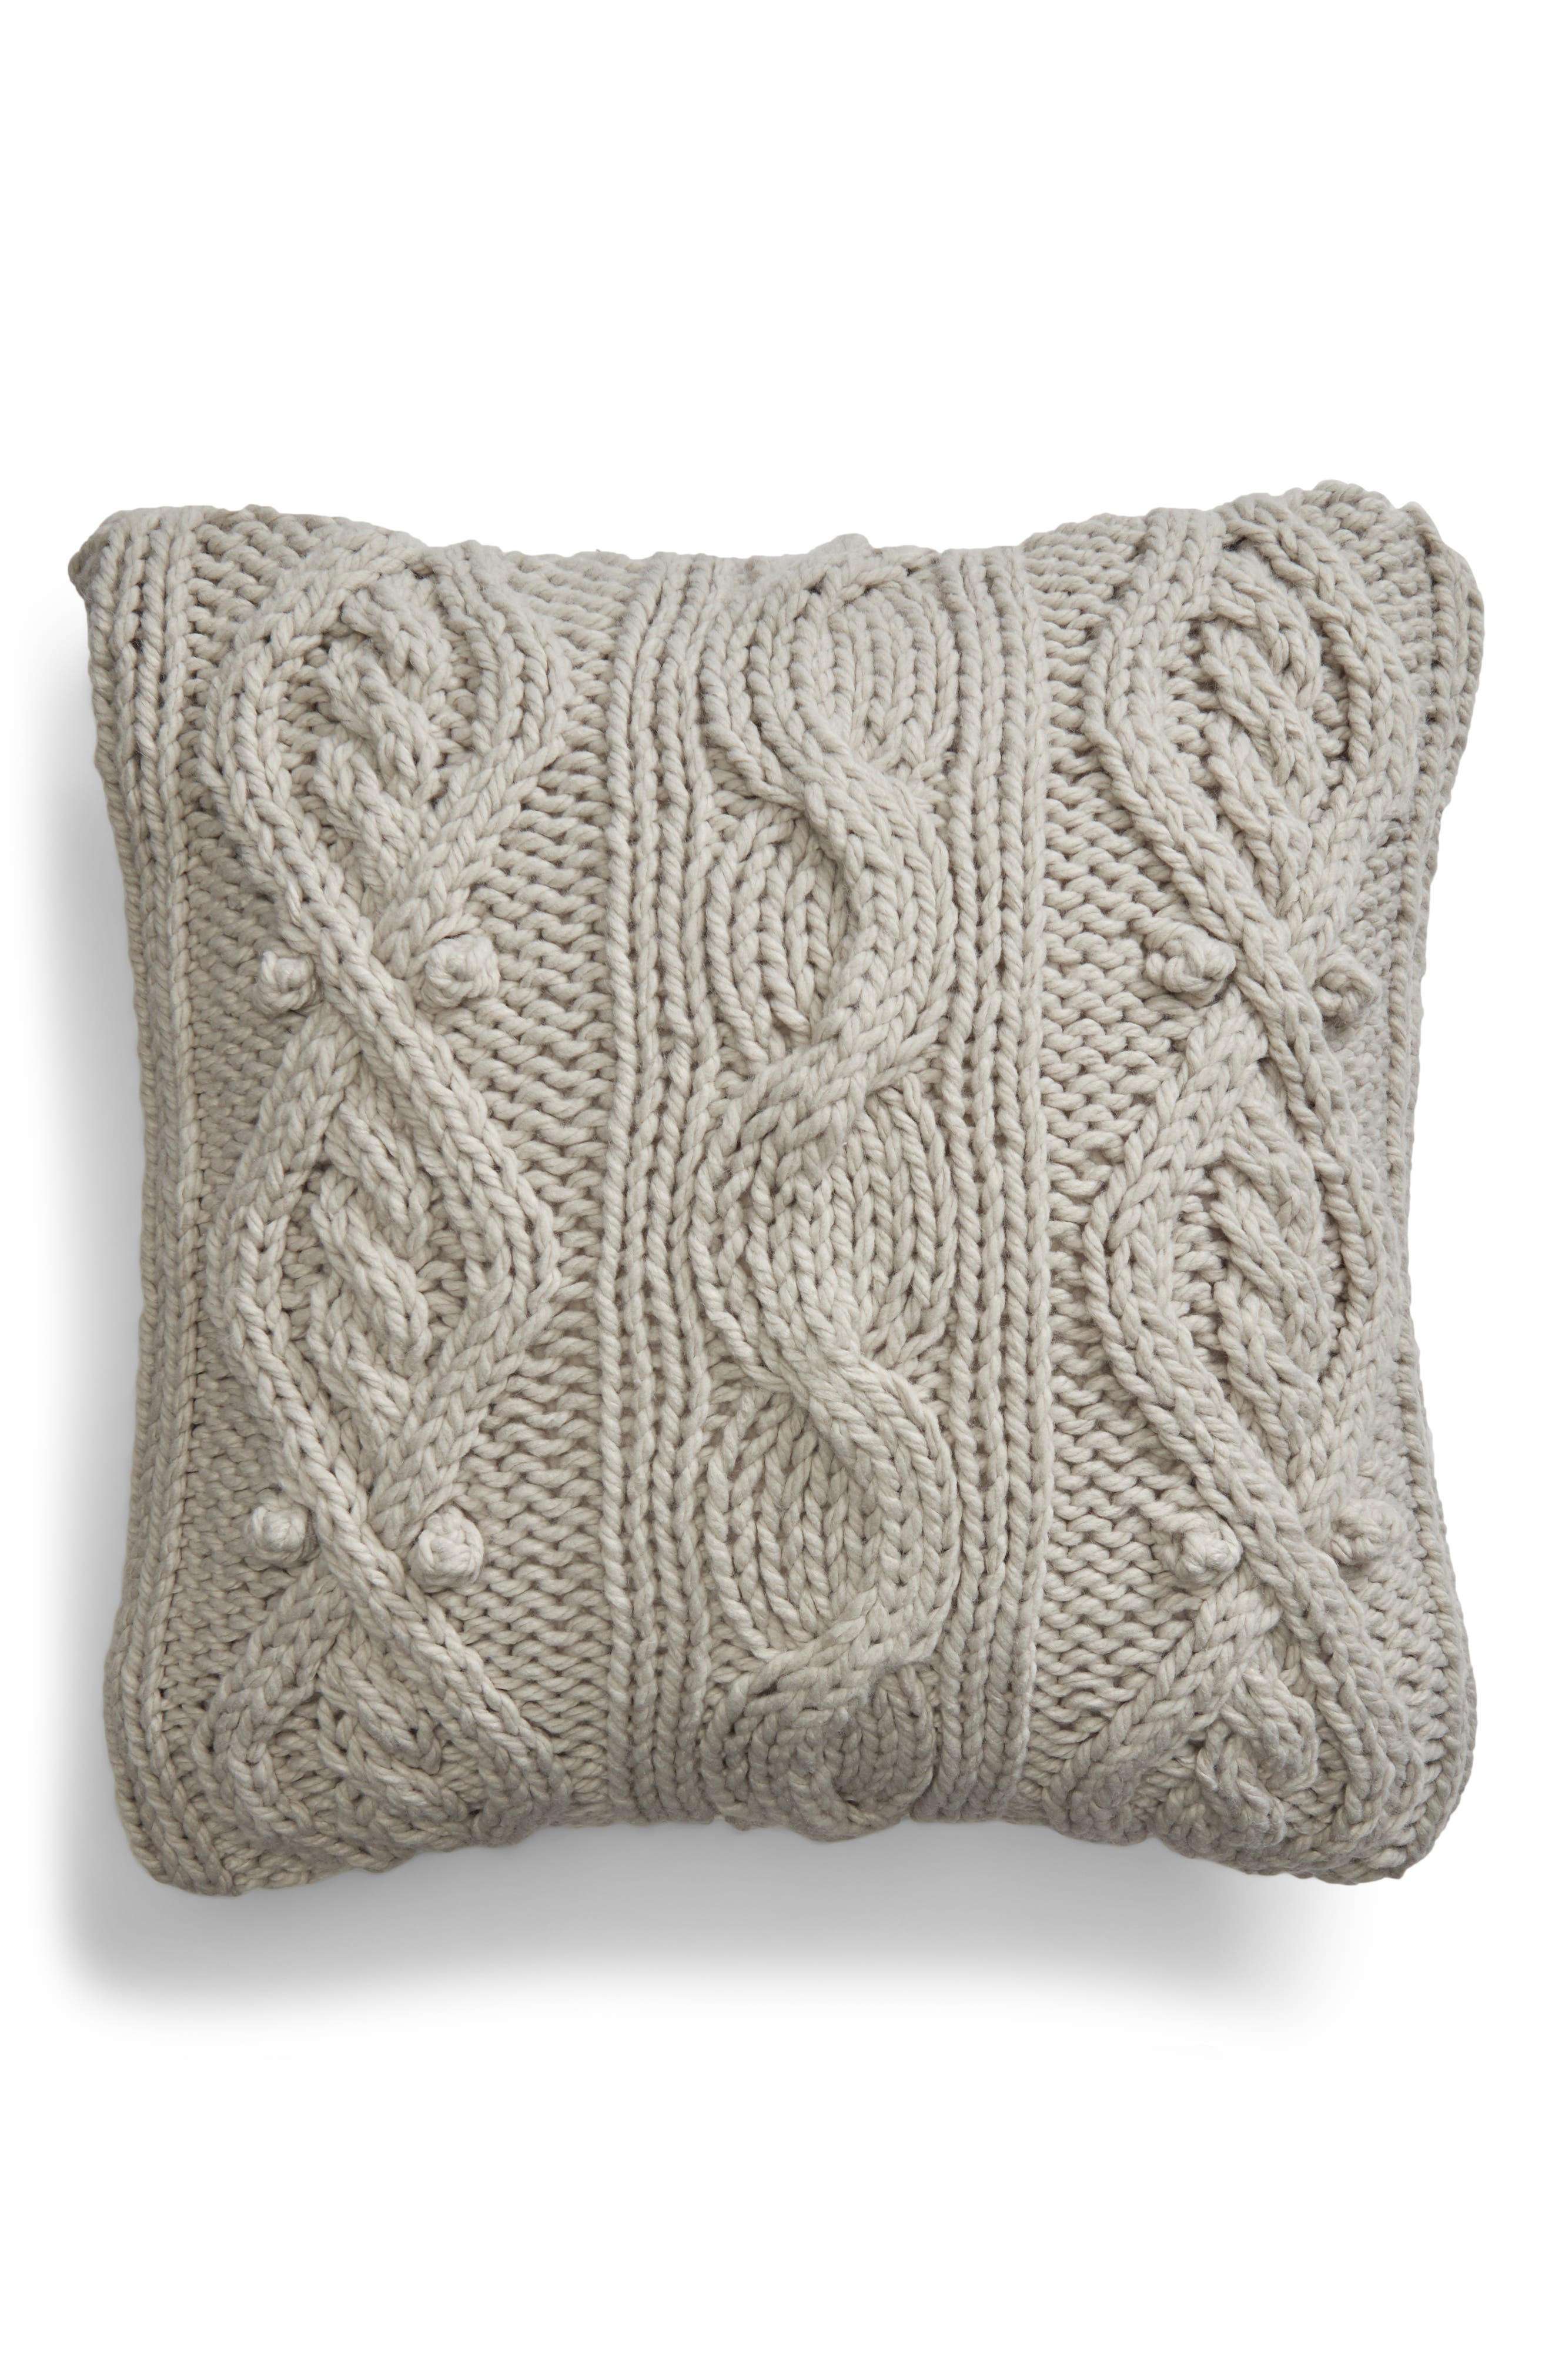 Chunky Cable Knit Accent Pillow,                         Main,                         color, 020